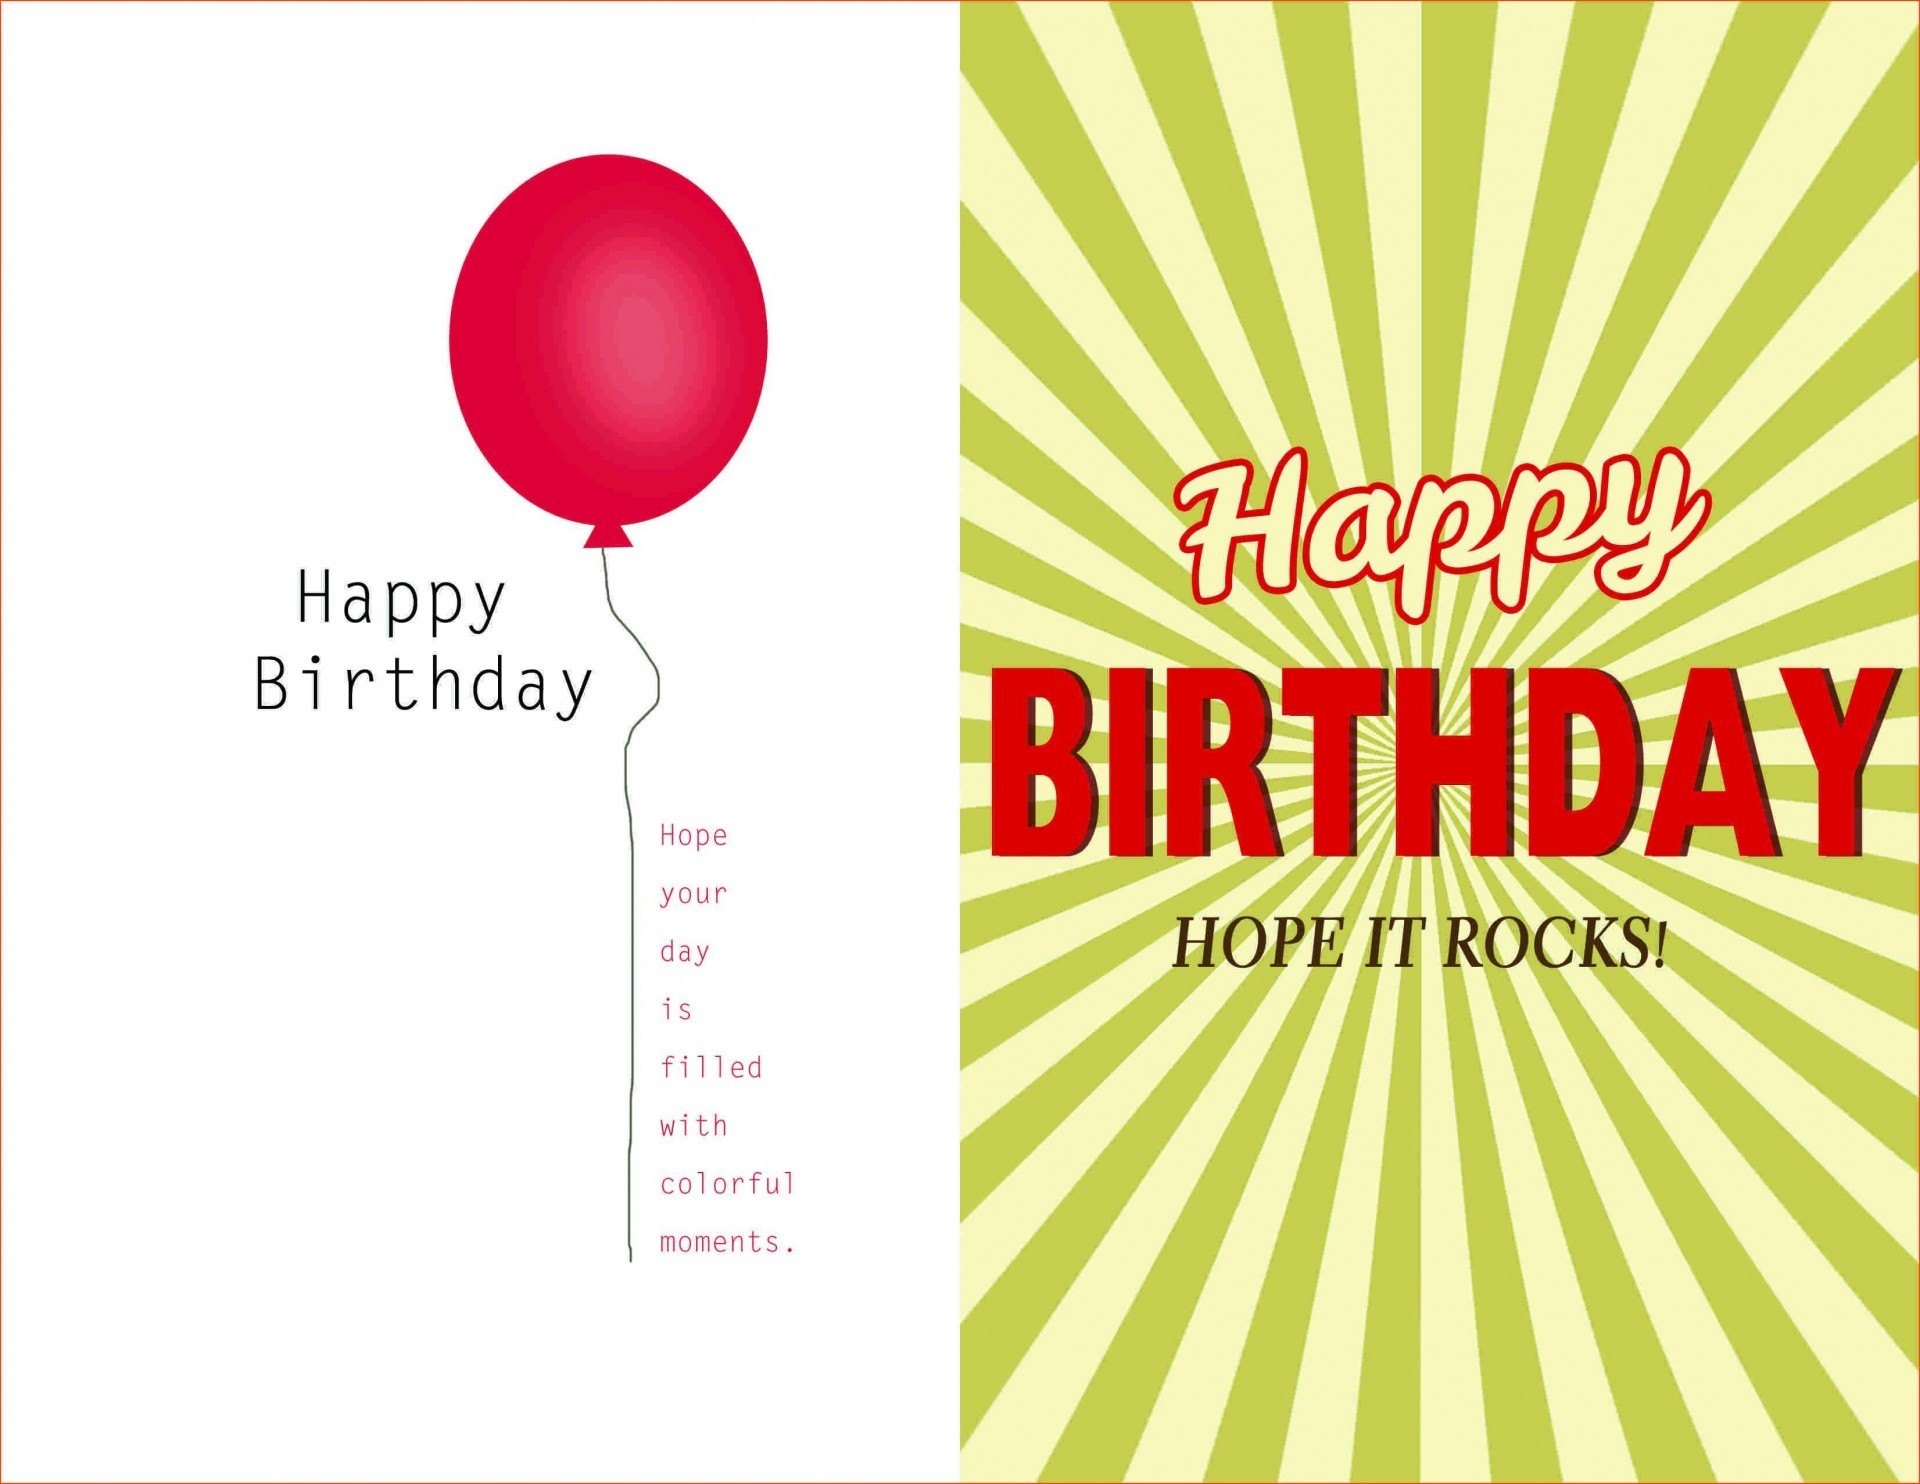 000 Striking Happy Birthday Card Template For Word Highest Quality 1920